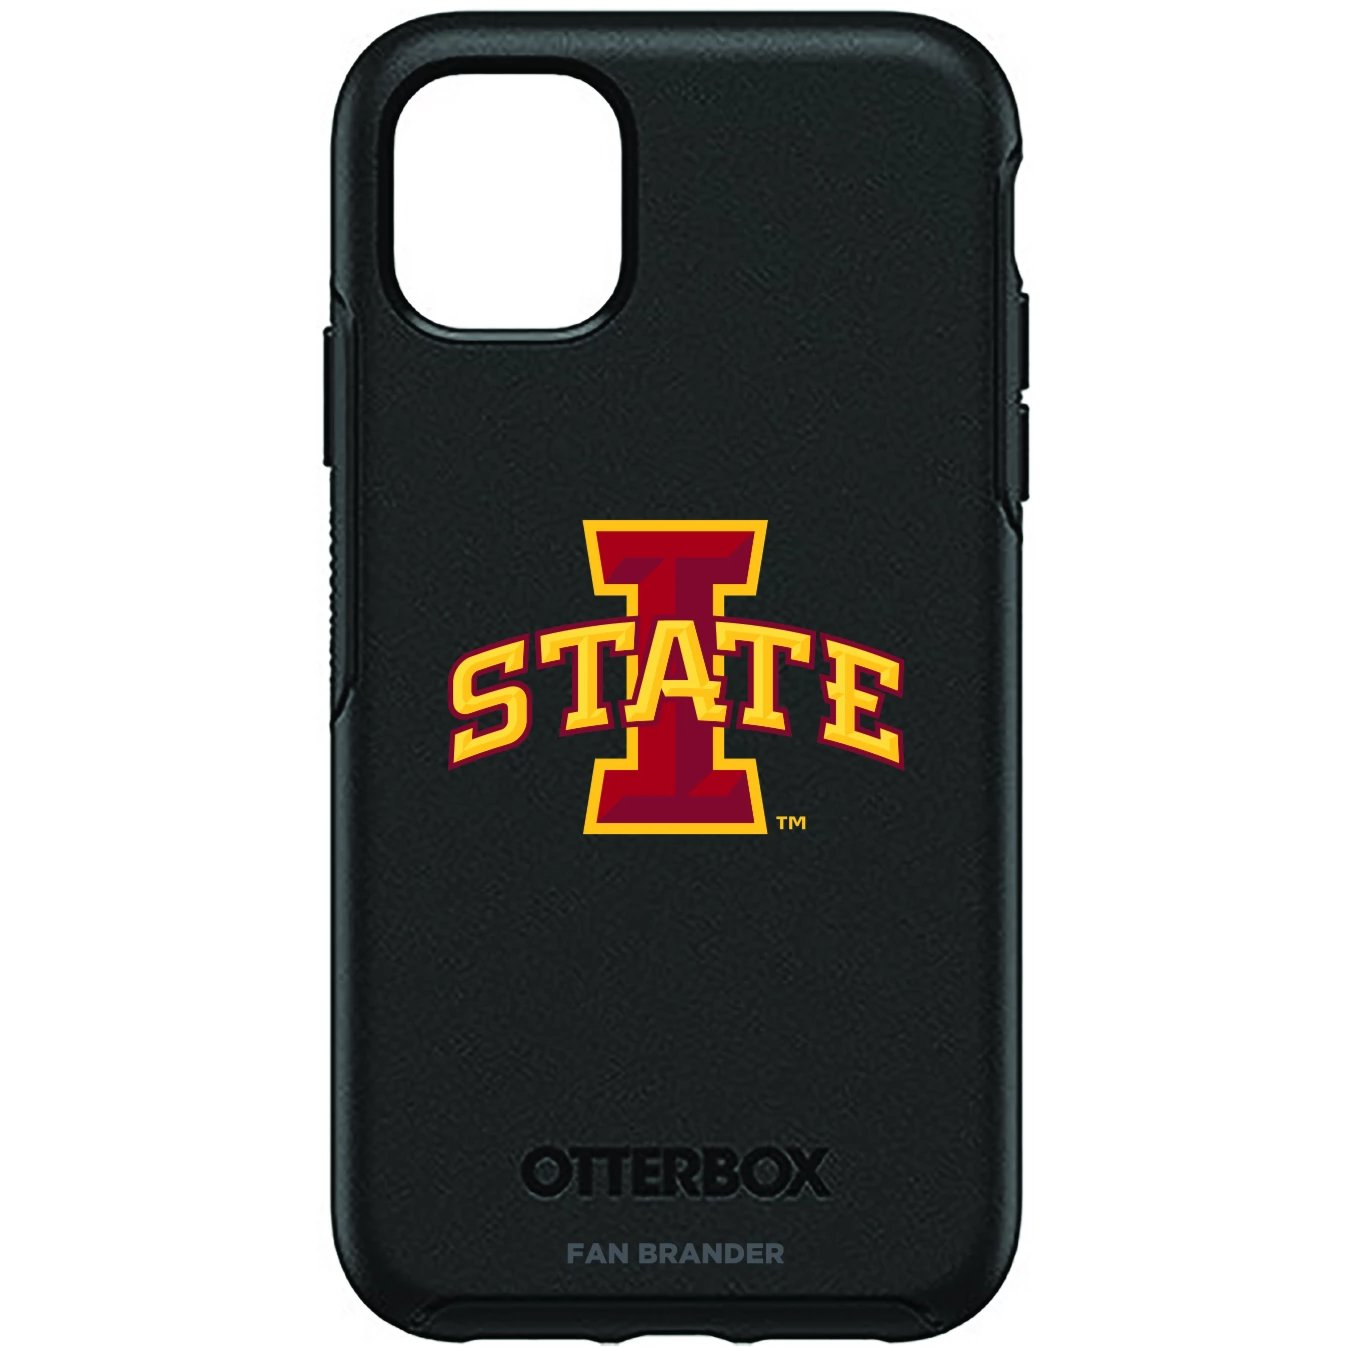 Iowa State Cyclones Otterbox Symmetry Case (for iPhone 11, Pro, Pro Max)